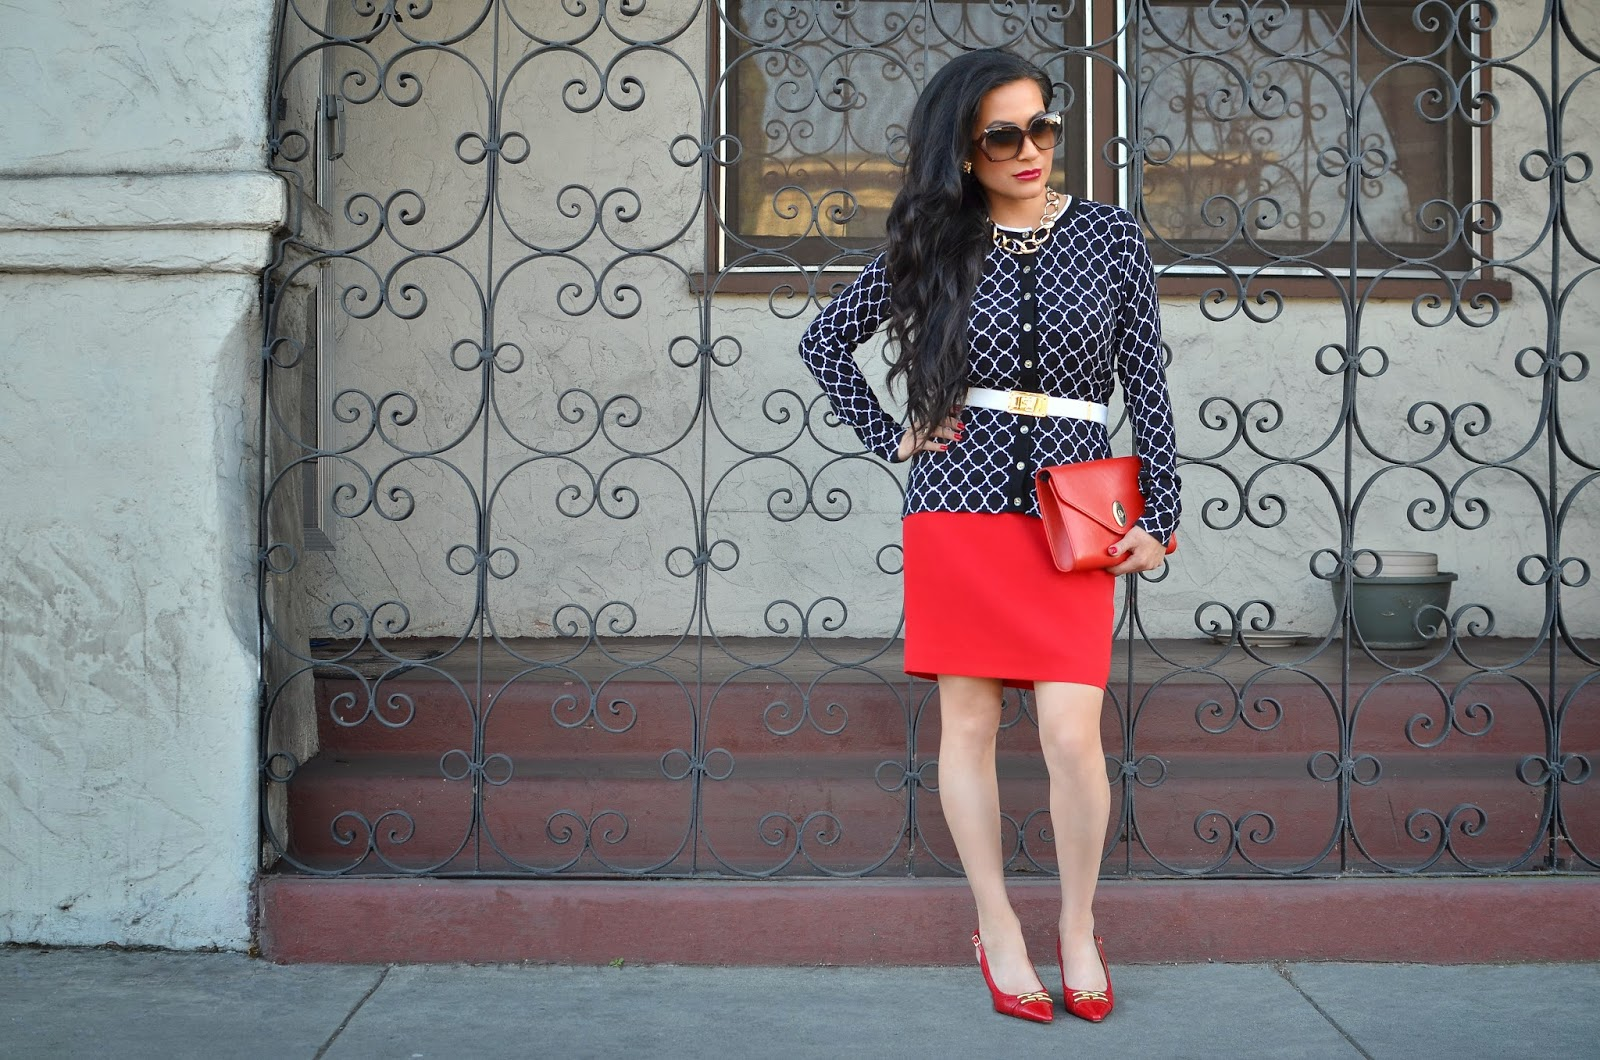 St. John Knits Belt St. Thomas gold link necklace Gucci Sunglassess Karen Scott Red and Gold Heels Christian Dior Handbag Vintage Christian Dior Red Handbag Charter Club Navy Sweater Cardigan Macy's